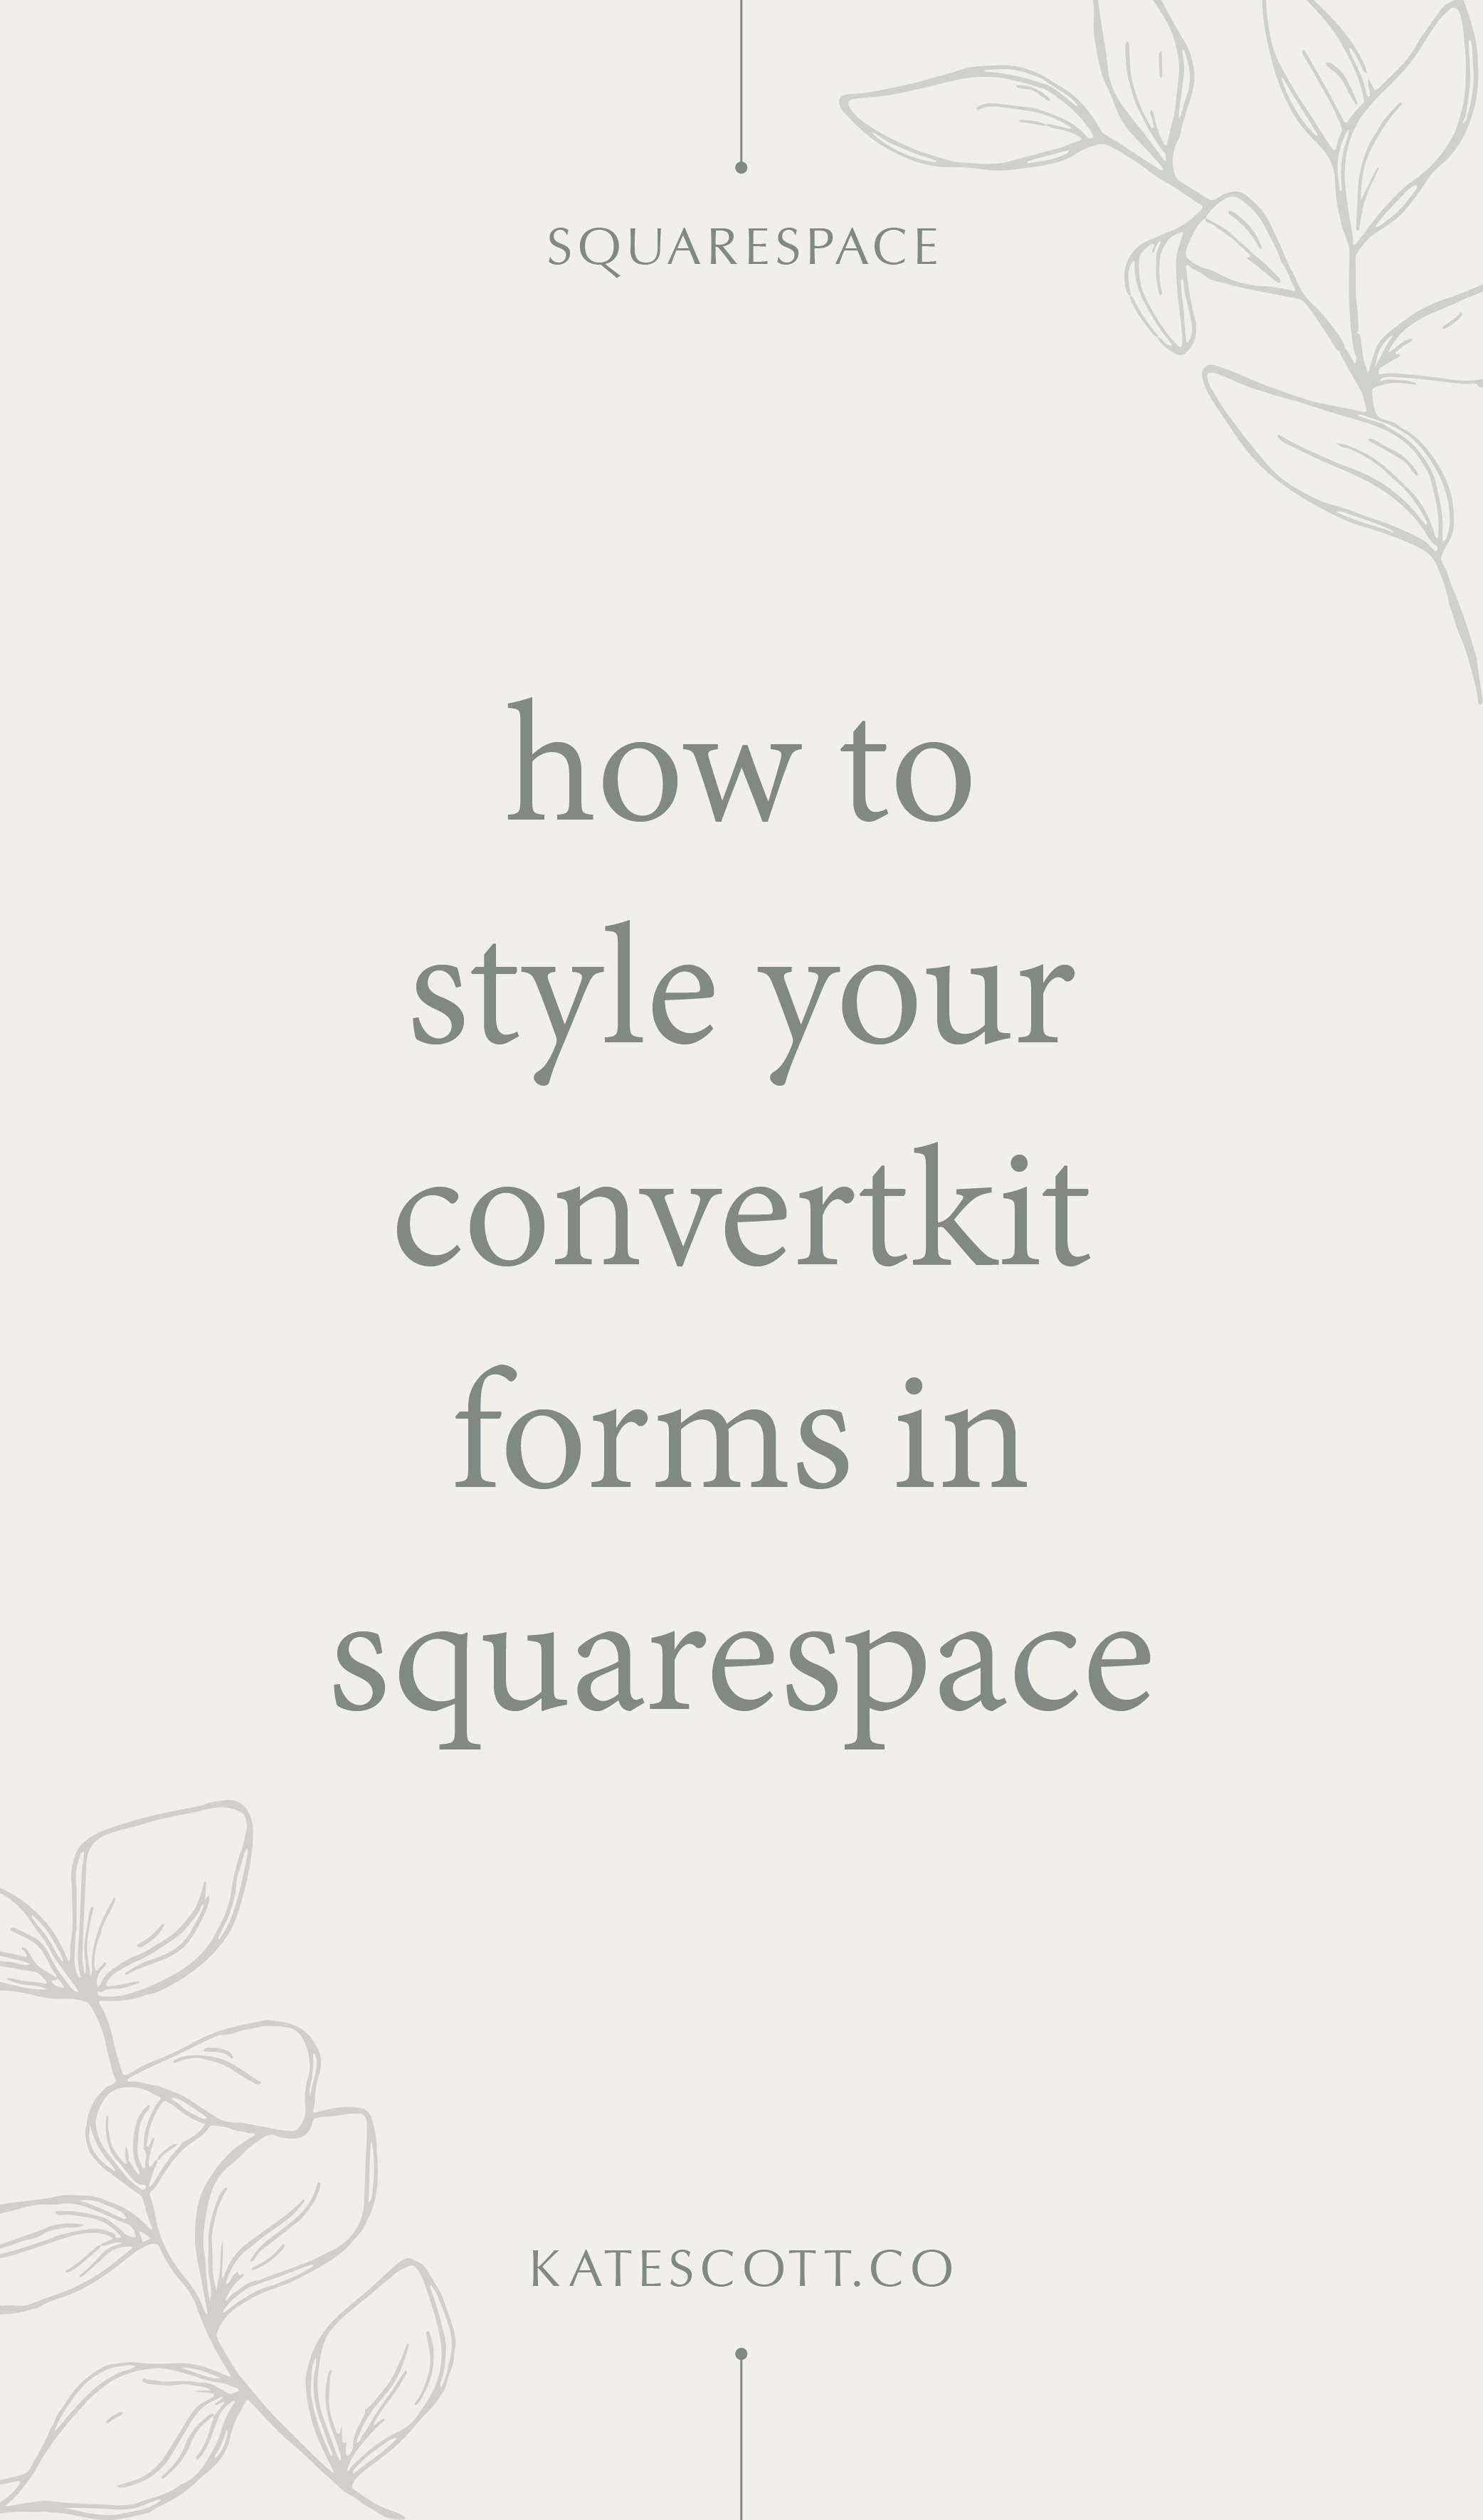 How to Customize Your ConvertKit Forms with Your Brand Fonts in Squarespace | Customize ConvertKit Form | ConvertKit Squarespace | Squarespace ConvertKit | Squarespace Tips | ConvertKit Tips | ConvertKit Tutorial | Squarespace Tutorial | #convertkit #emailmarketing #emailmarketingtips #onlinemarketing #marketing #squarespace #squarespacetips #squarespacetutorial